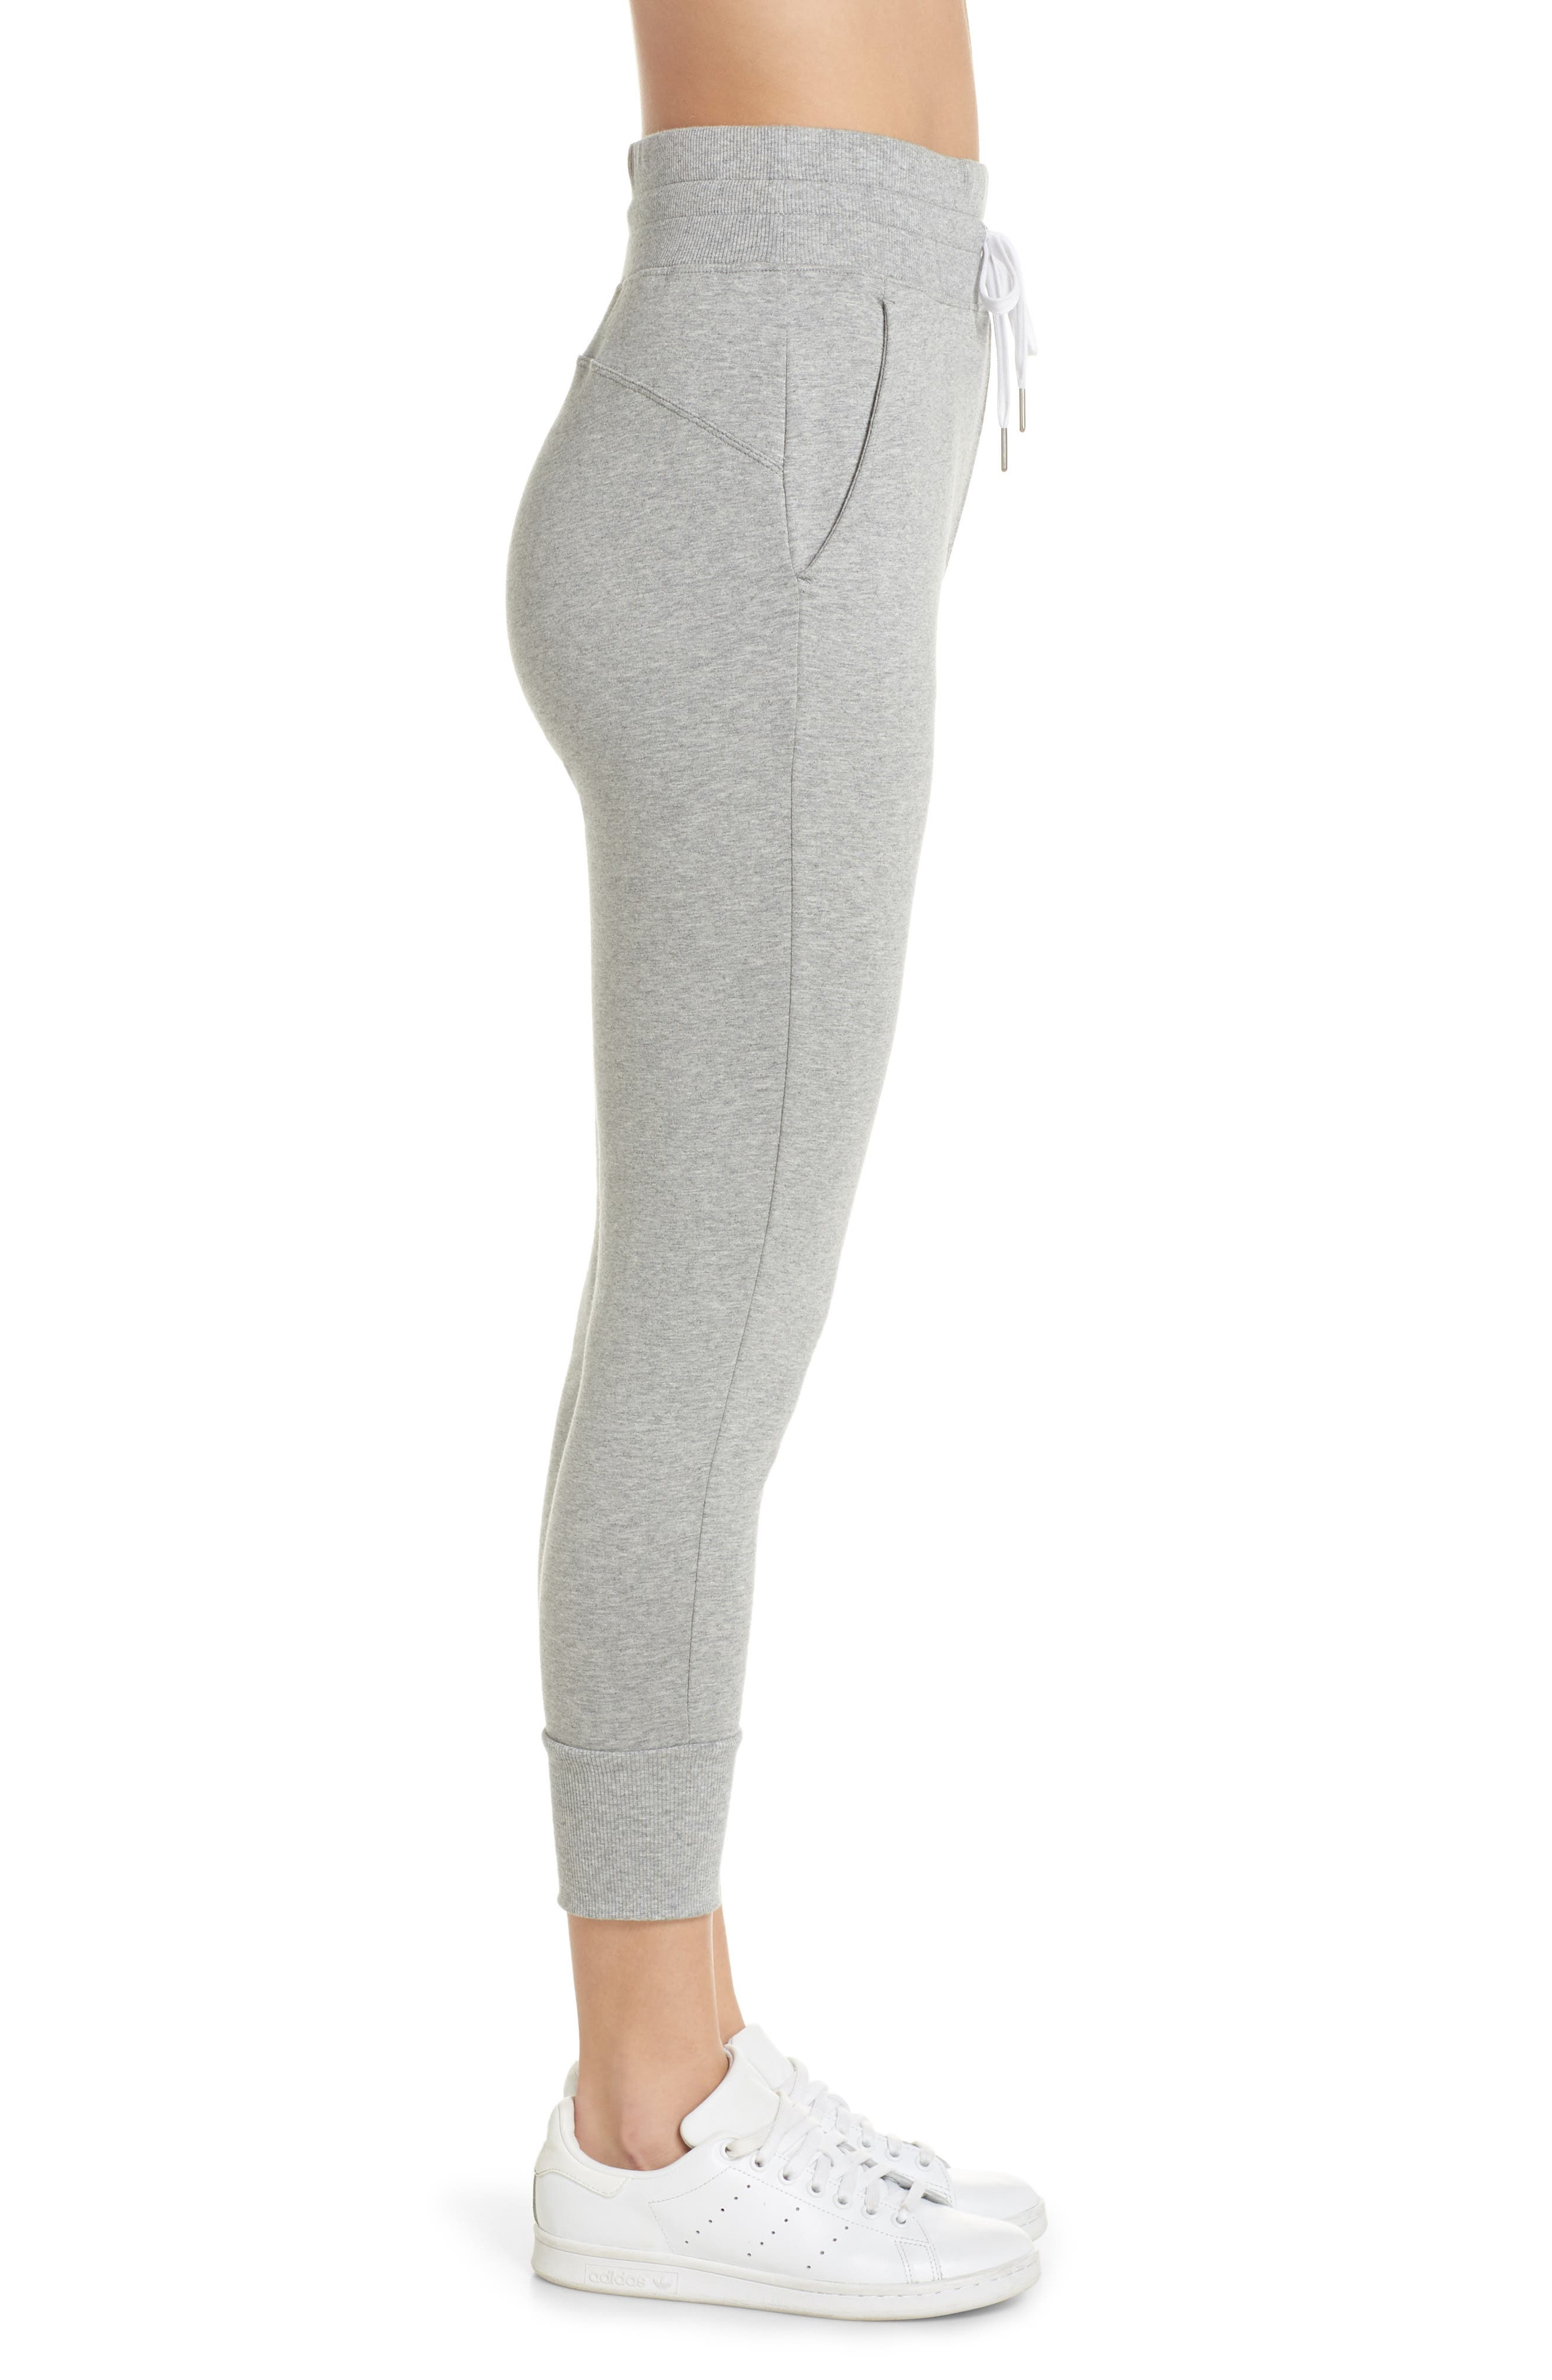 Repeat High Waist Crop Jogger Pants,                             Alternate thumbnail 3, color,                             GREY QUIET HEATHER